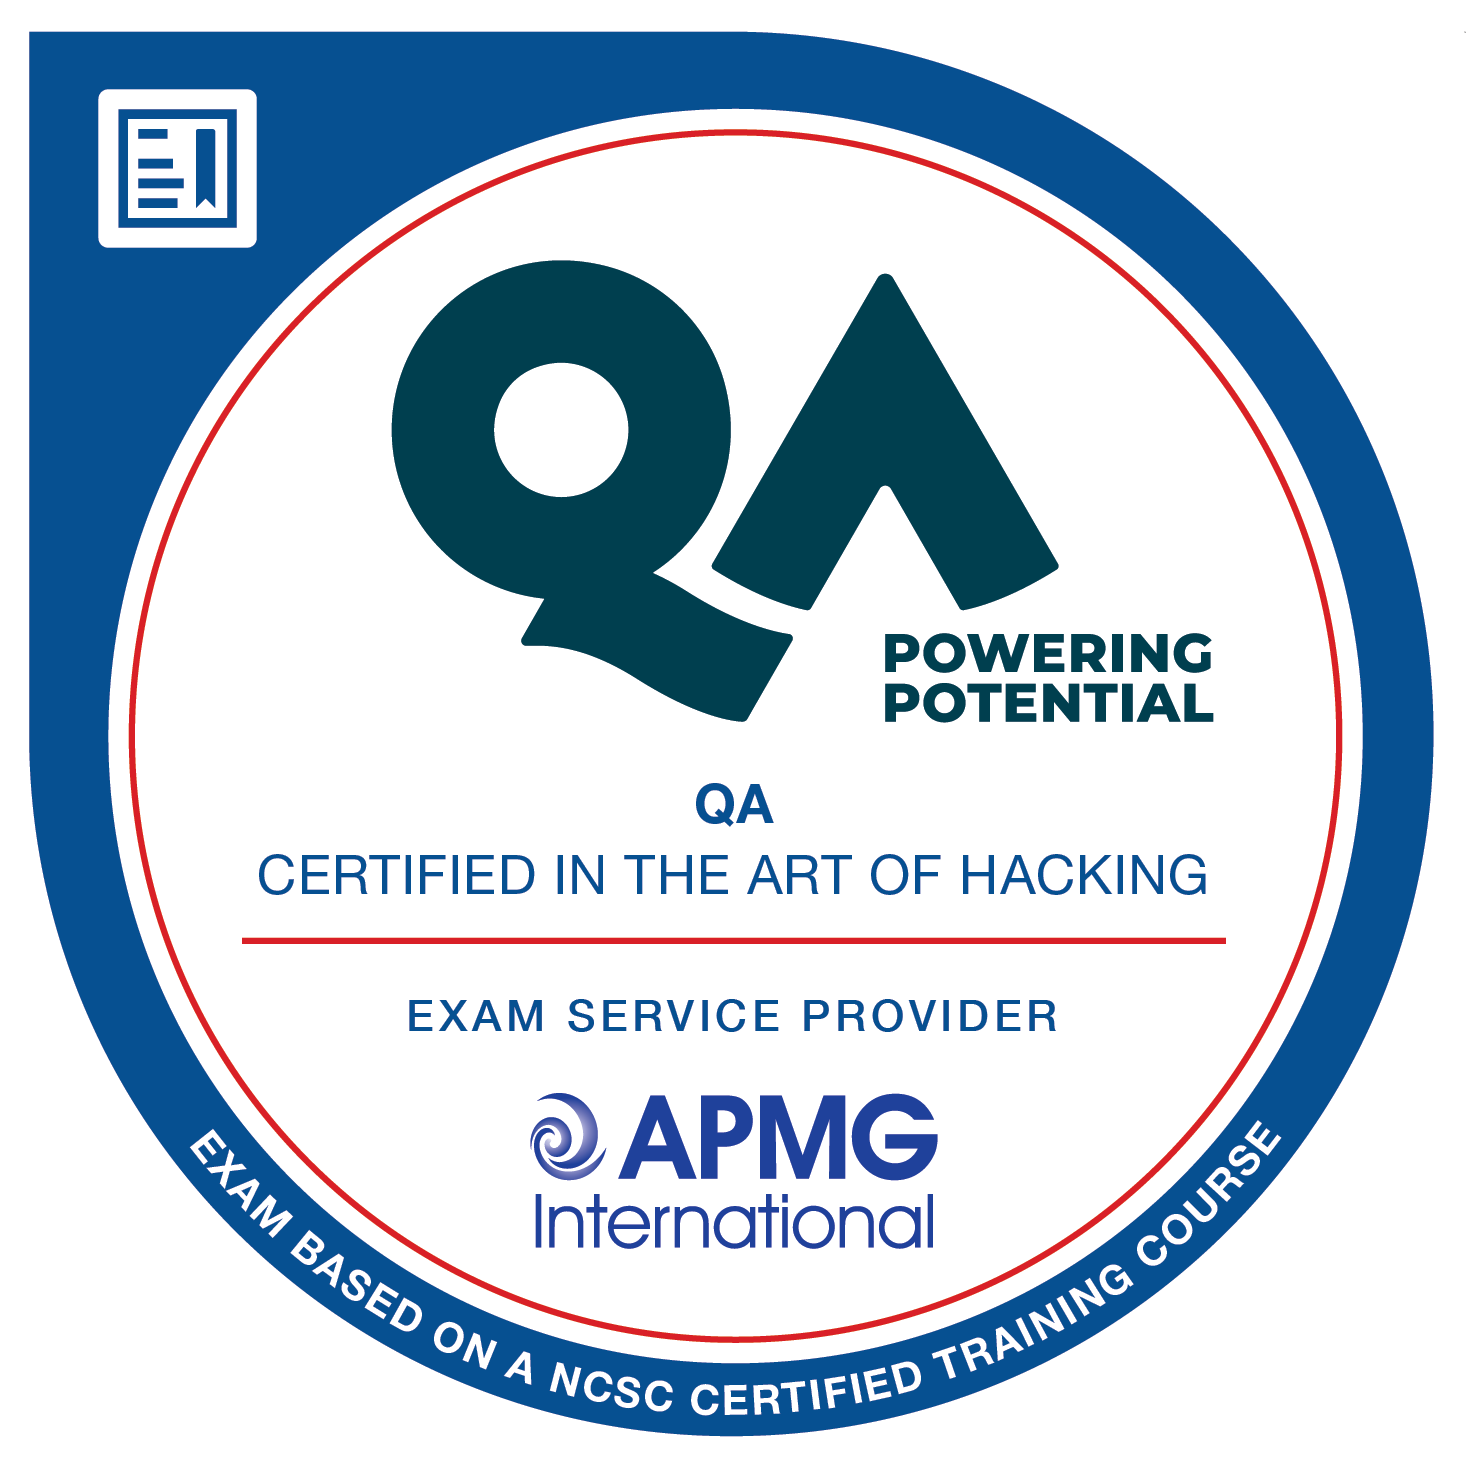 QA Certified in the Art of Hacking